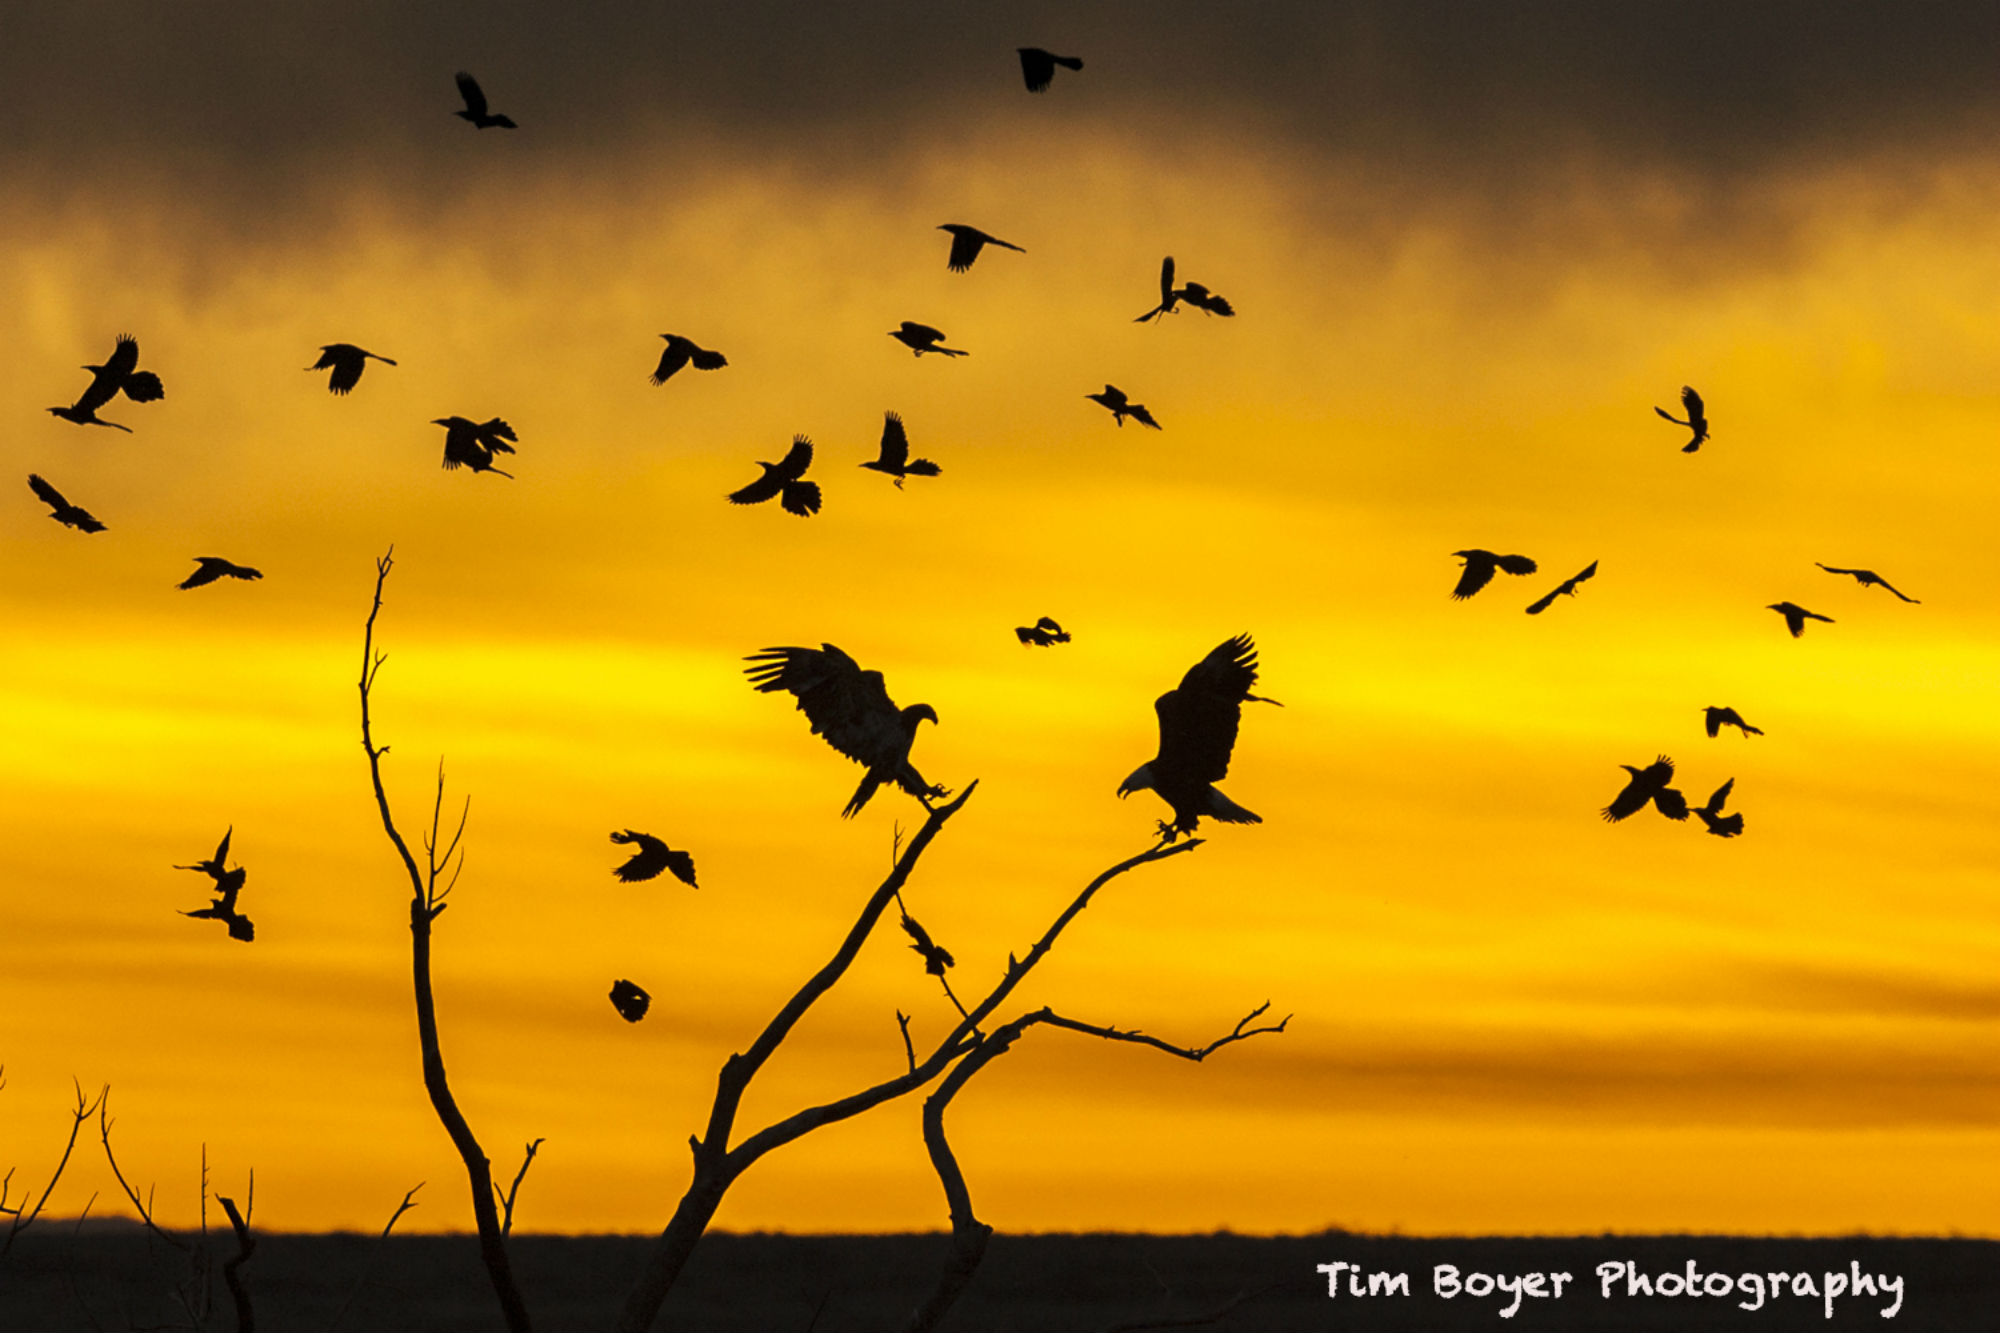 tim boyer photography eagles image